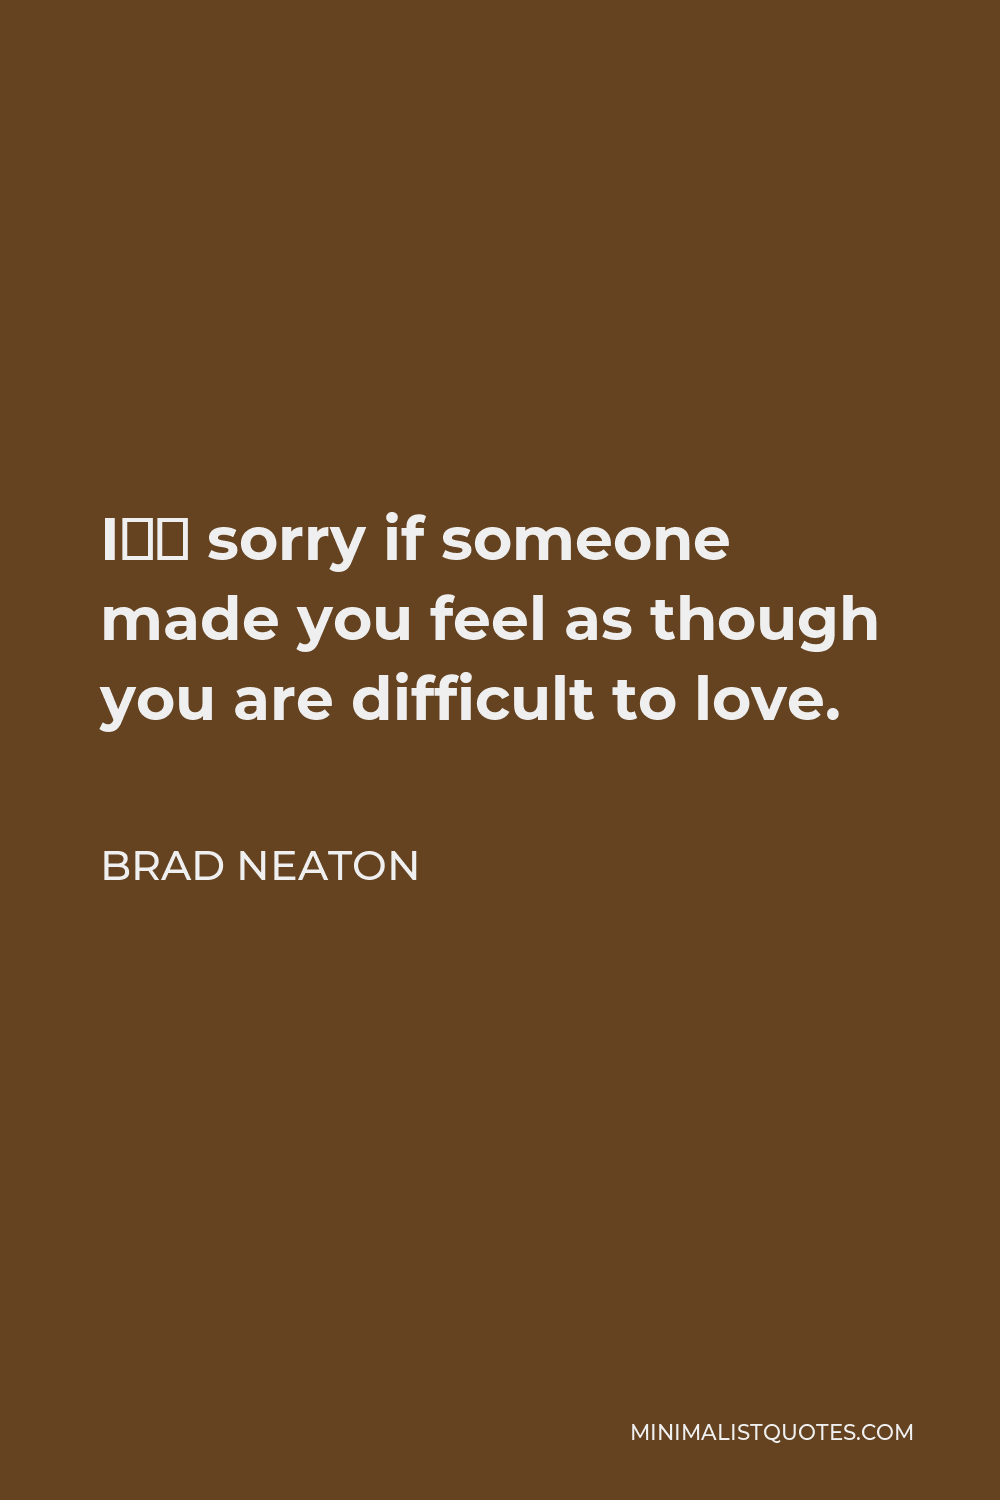 Brad Neaton Quote - I'm sorry if someone made you feel as though you are difficult to love.